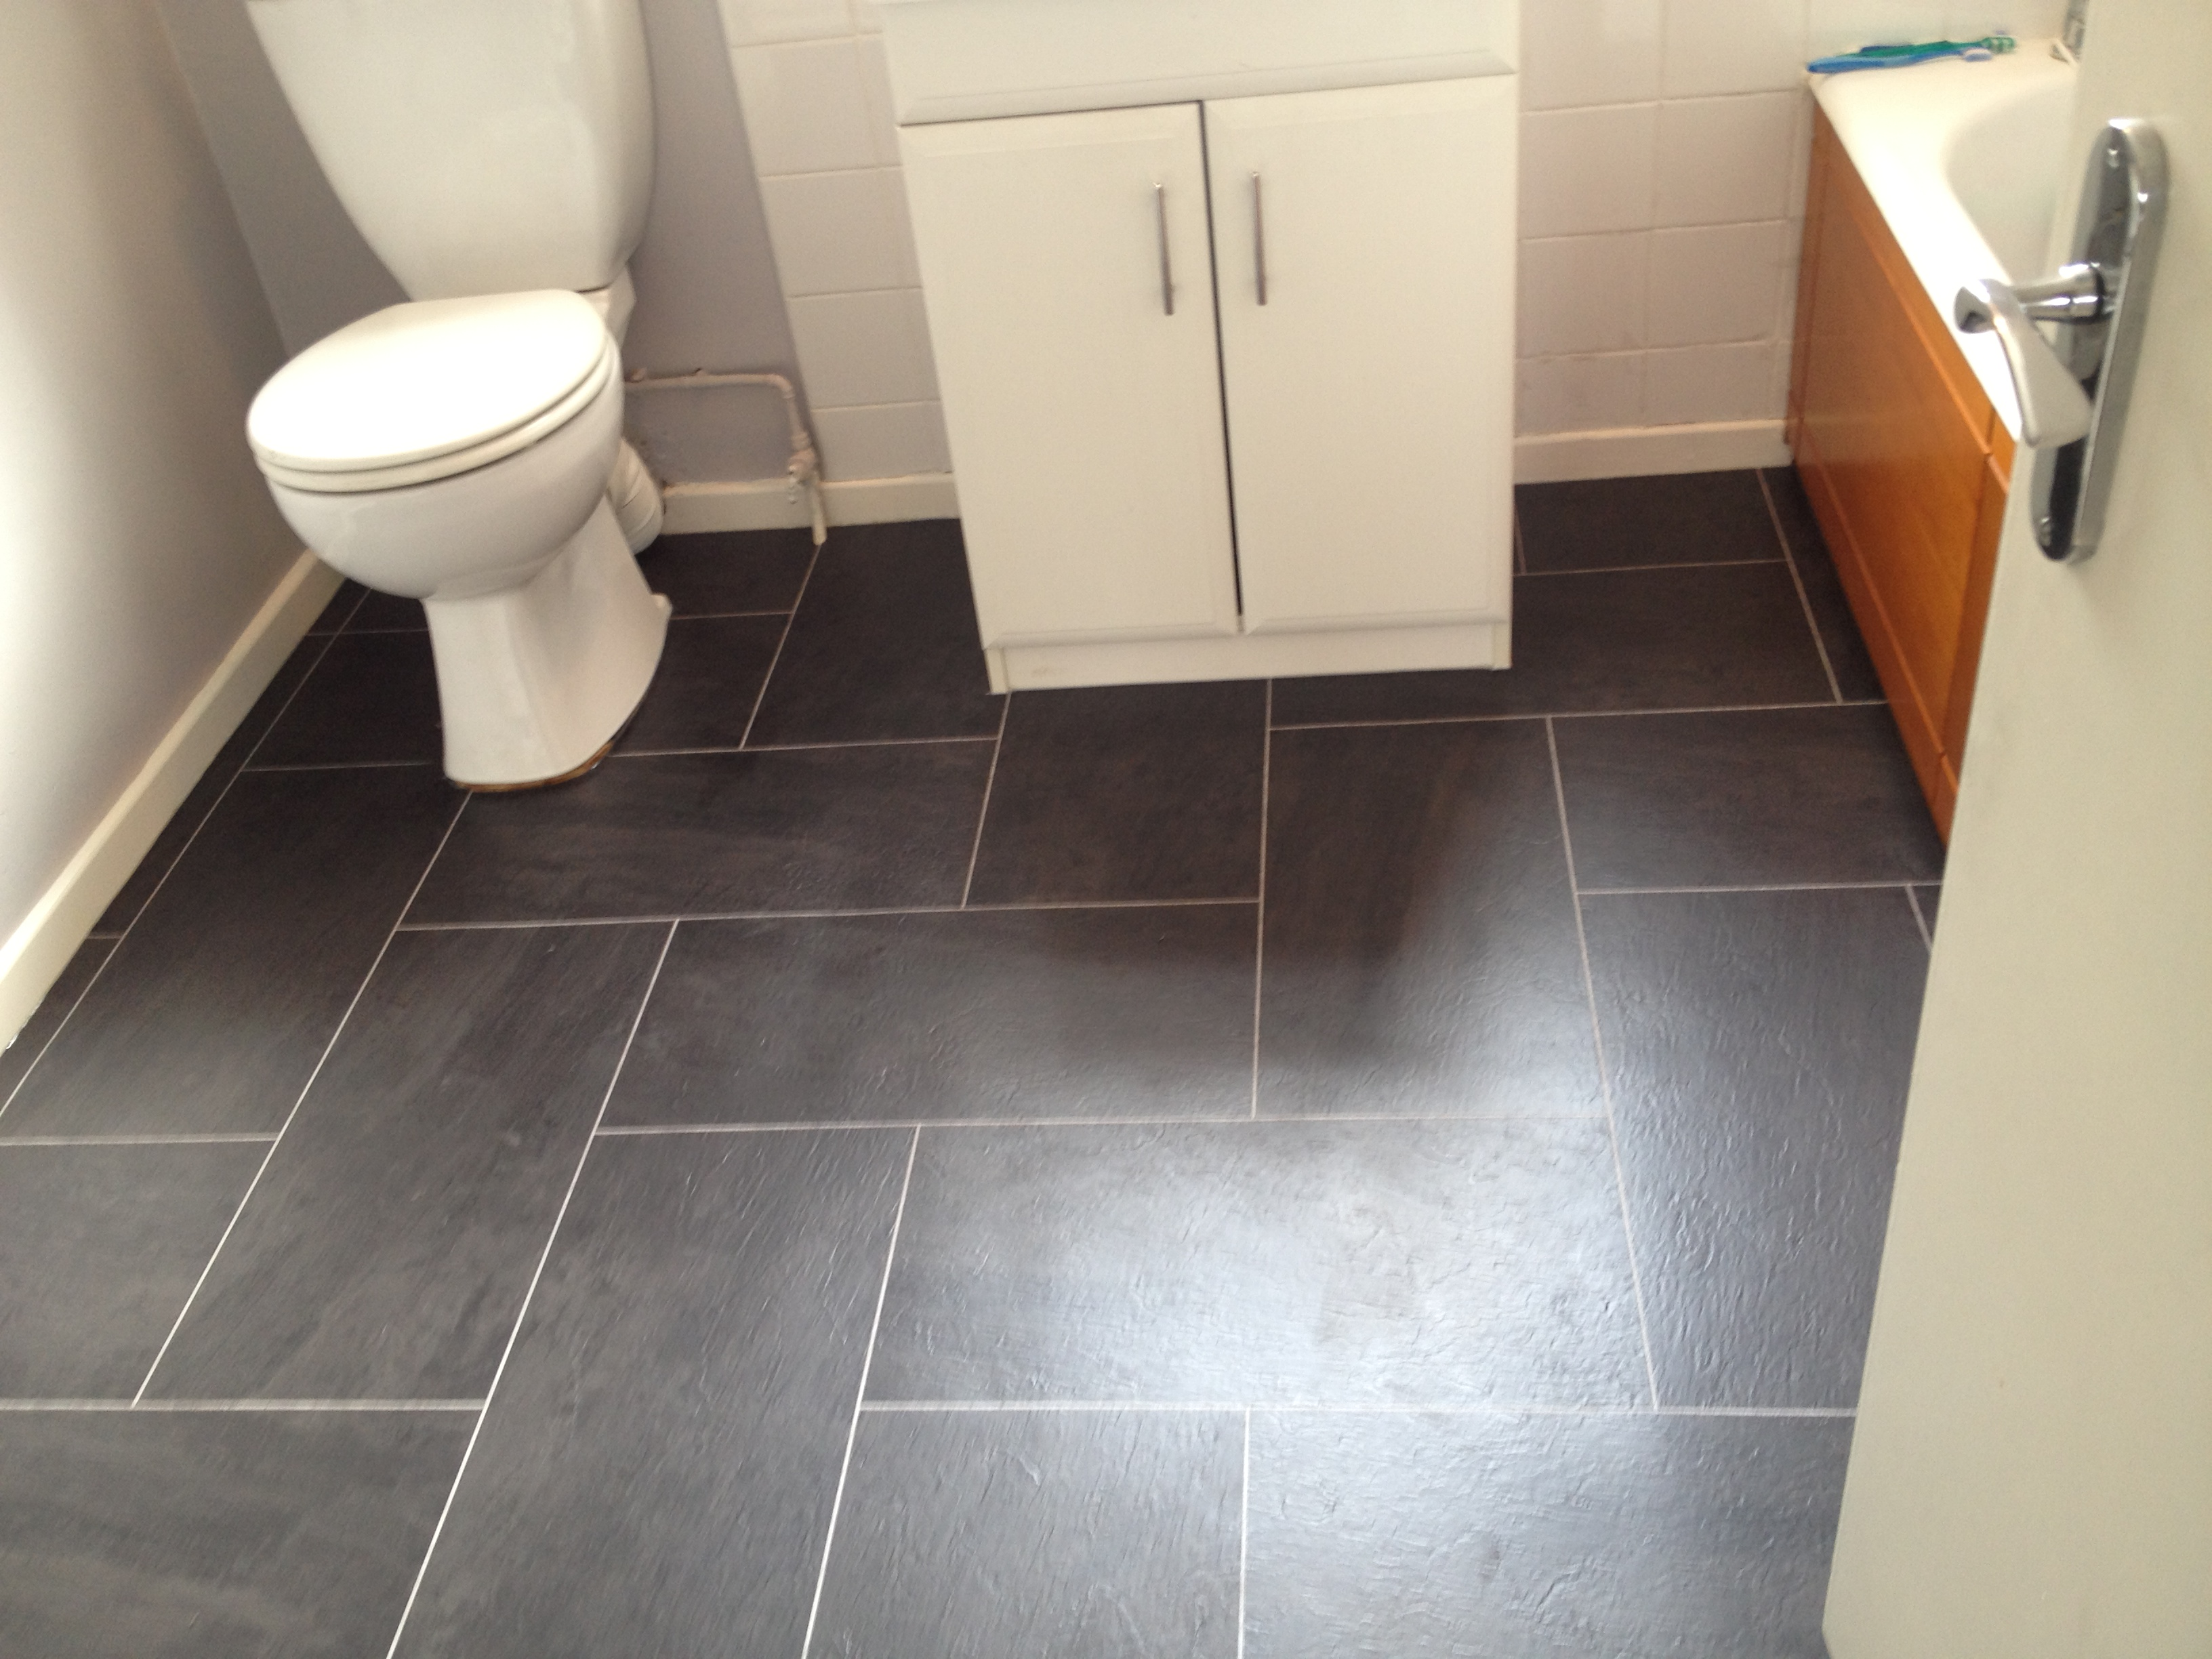 dark-grey-bathroom-linoleum-flooring-tile-vinyl-plank-flooring-for-bathroom-bathroom-linoleum-flooring